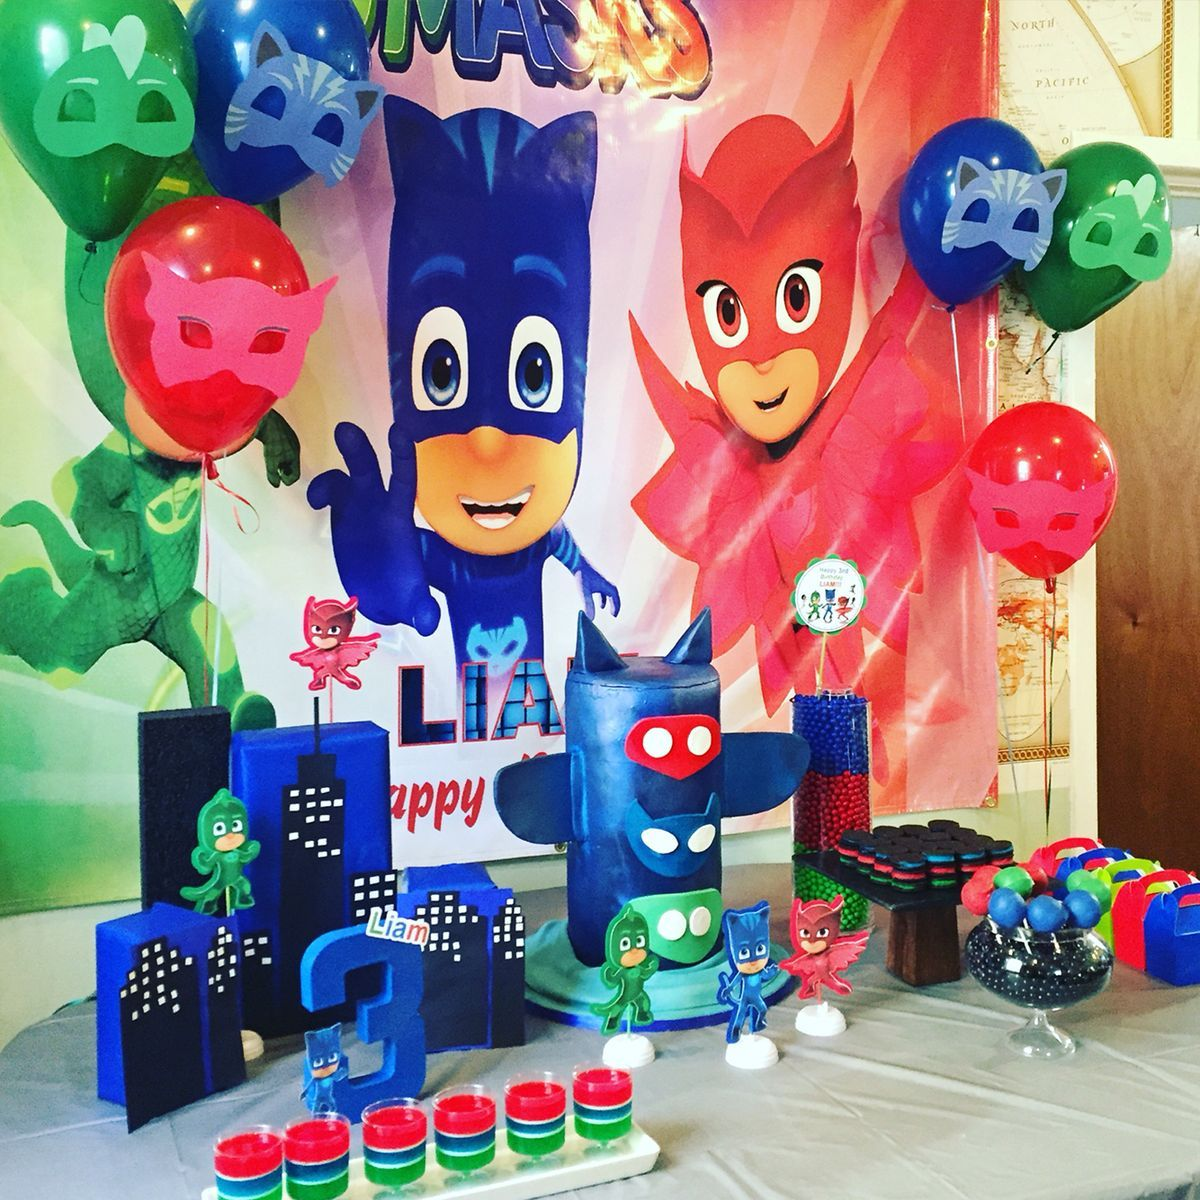 Pj masks birthday theme birthday ideas pinterest pj for 5th birthday decoration ideas